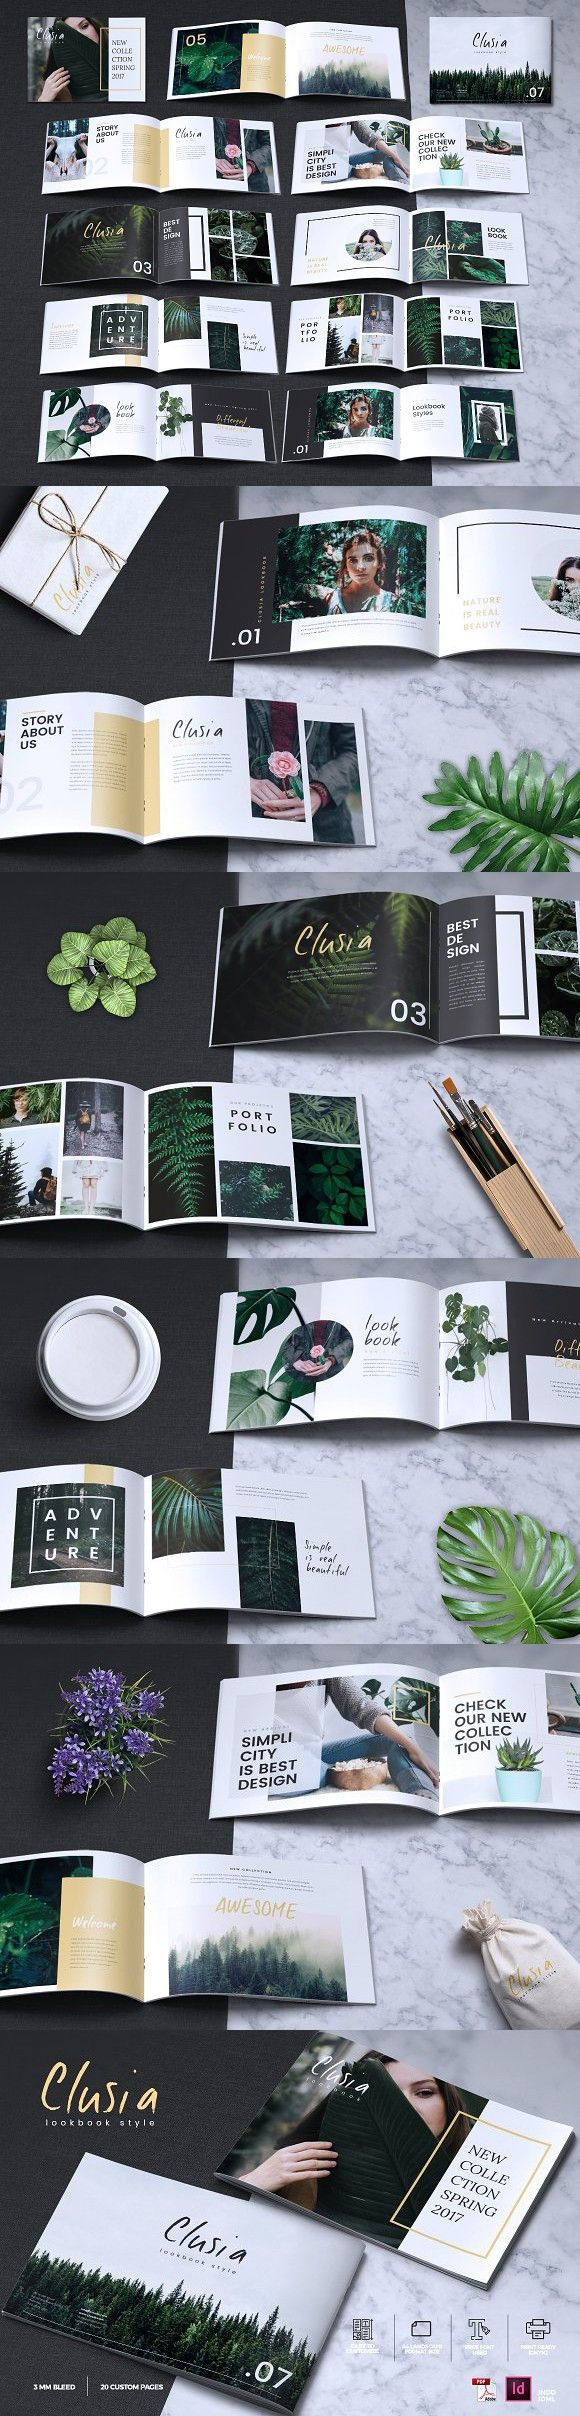 CLUSIA - Lookbook Brochure Catalogue #agency